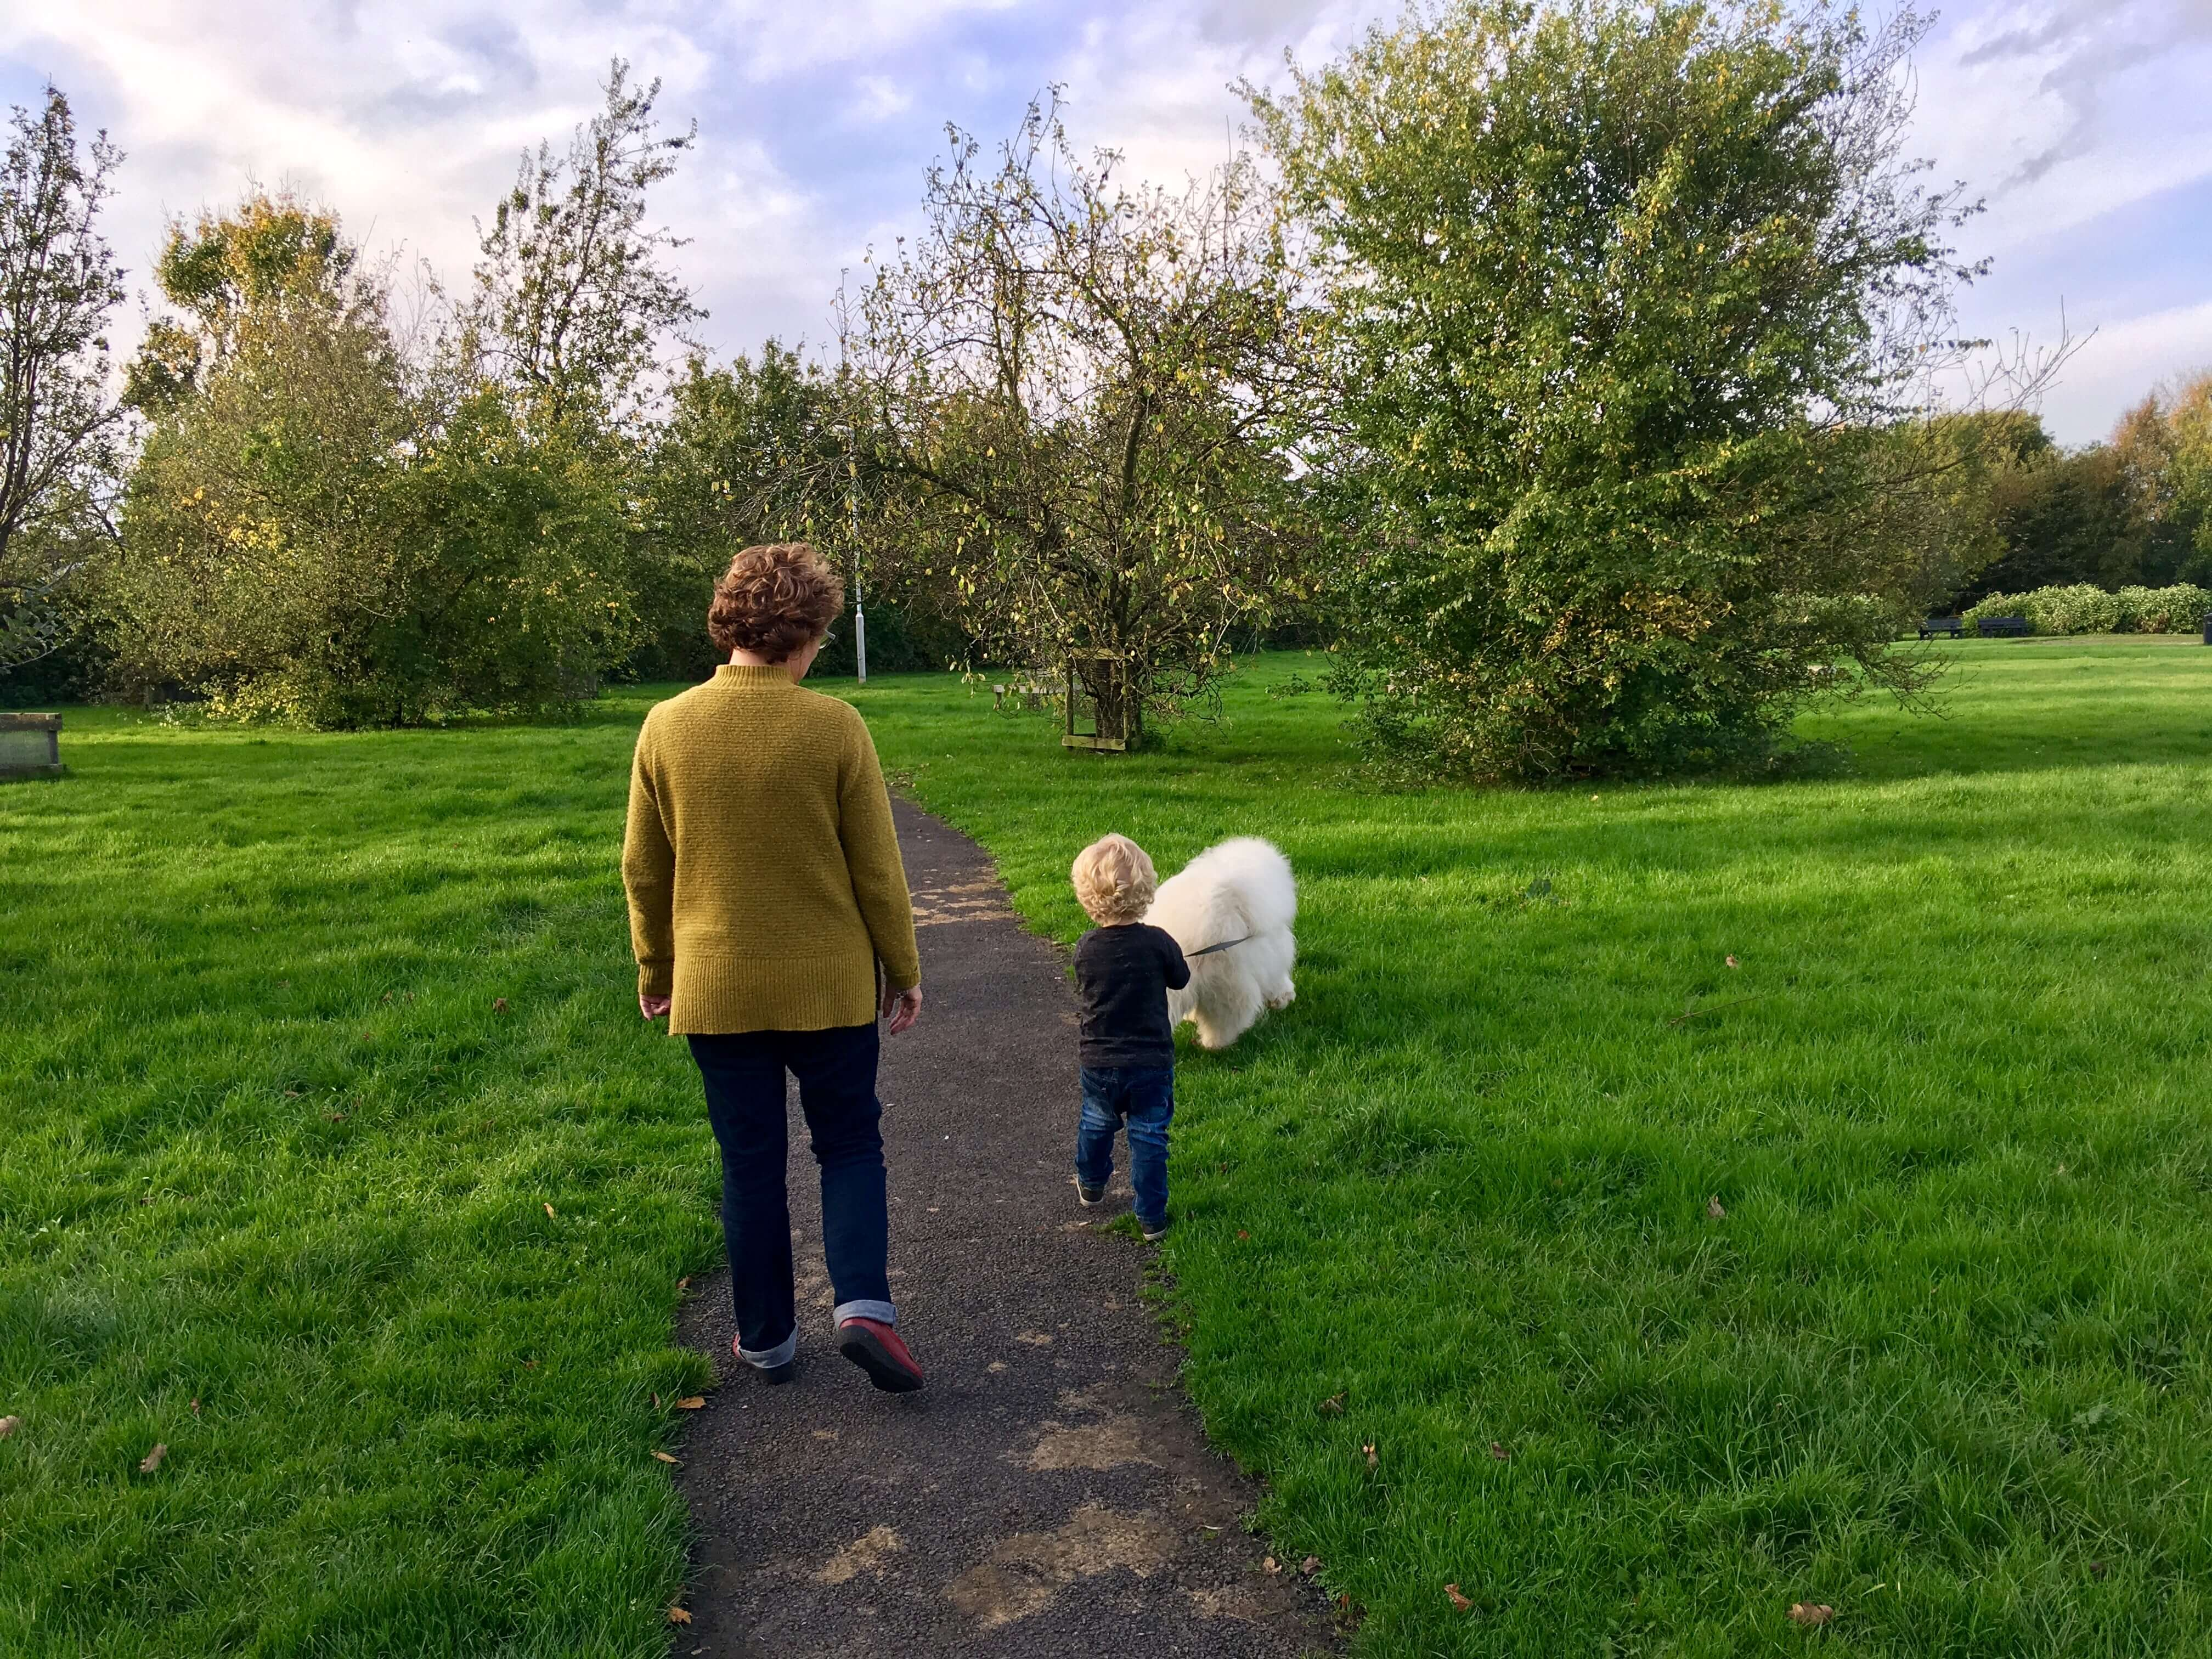 Walking the dog my mum and Lucas walking a big white fluffy dog through the field. My mum has a mustard coloured jumper in with dark blue jeans, short brown curly hair. Lucas has short wavy blonde hair holding the dogs lead and wearing dark blue jeans and black long sleeves top